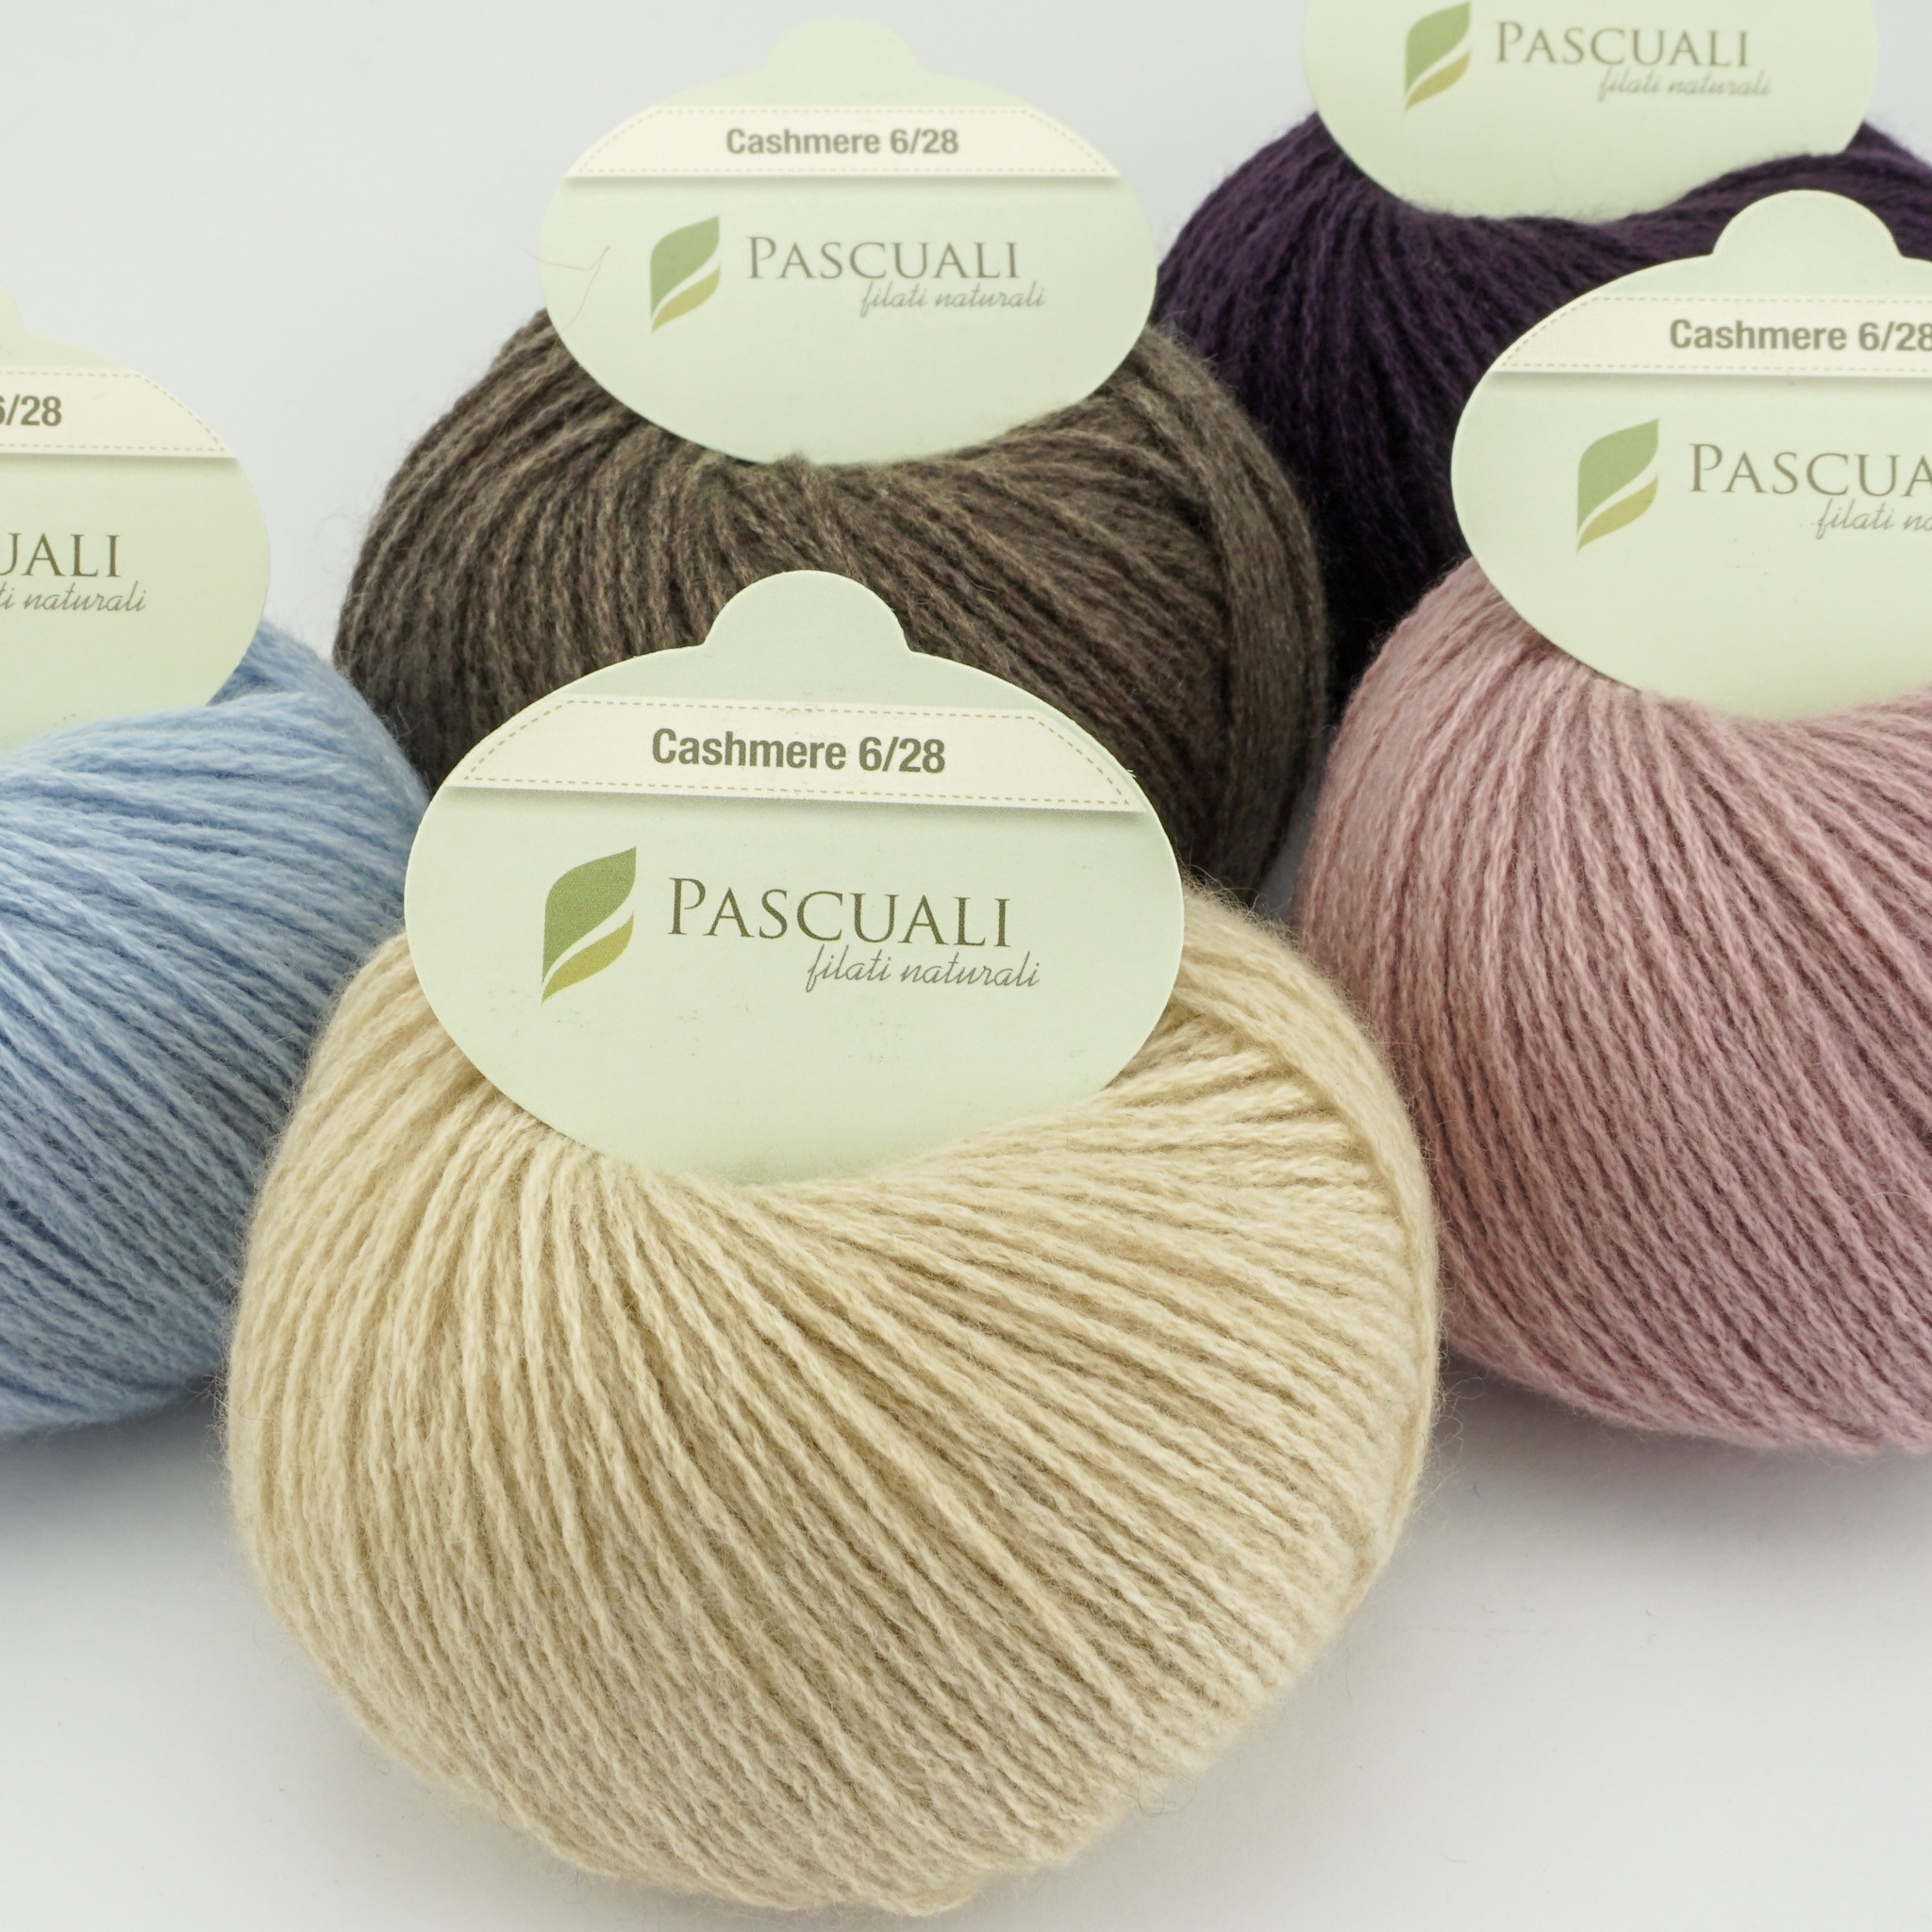 Cashmere Yarn for Sale Lovely Cashmere 6 28 Of Perfect 47 Models Cashmere Yarn for Sale